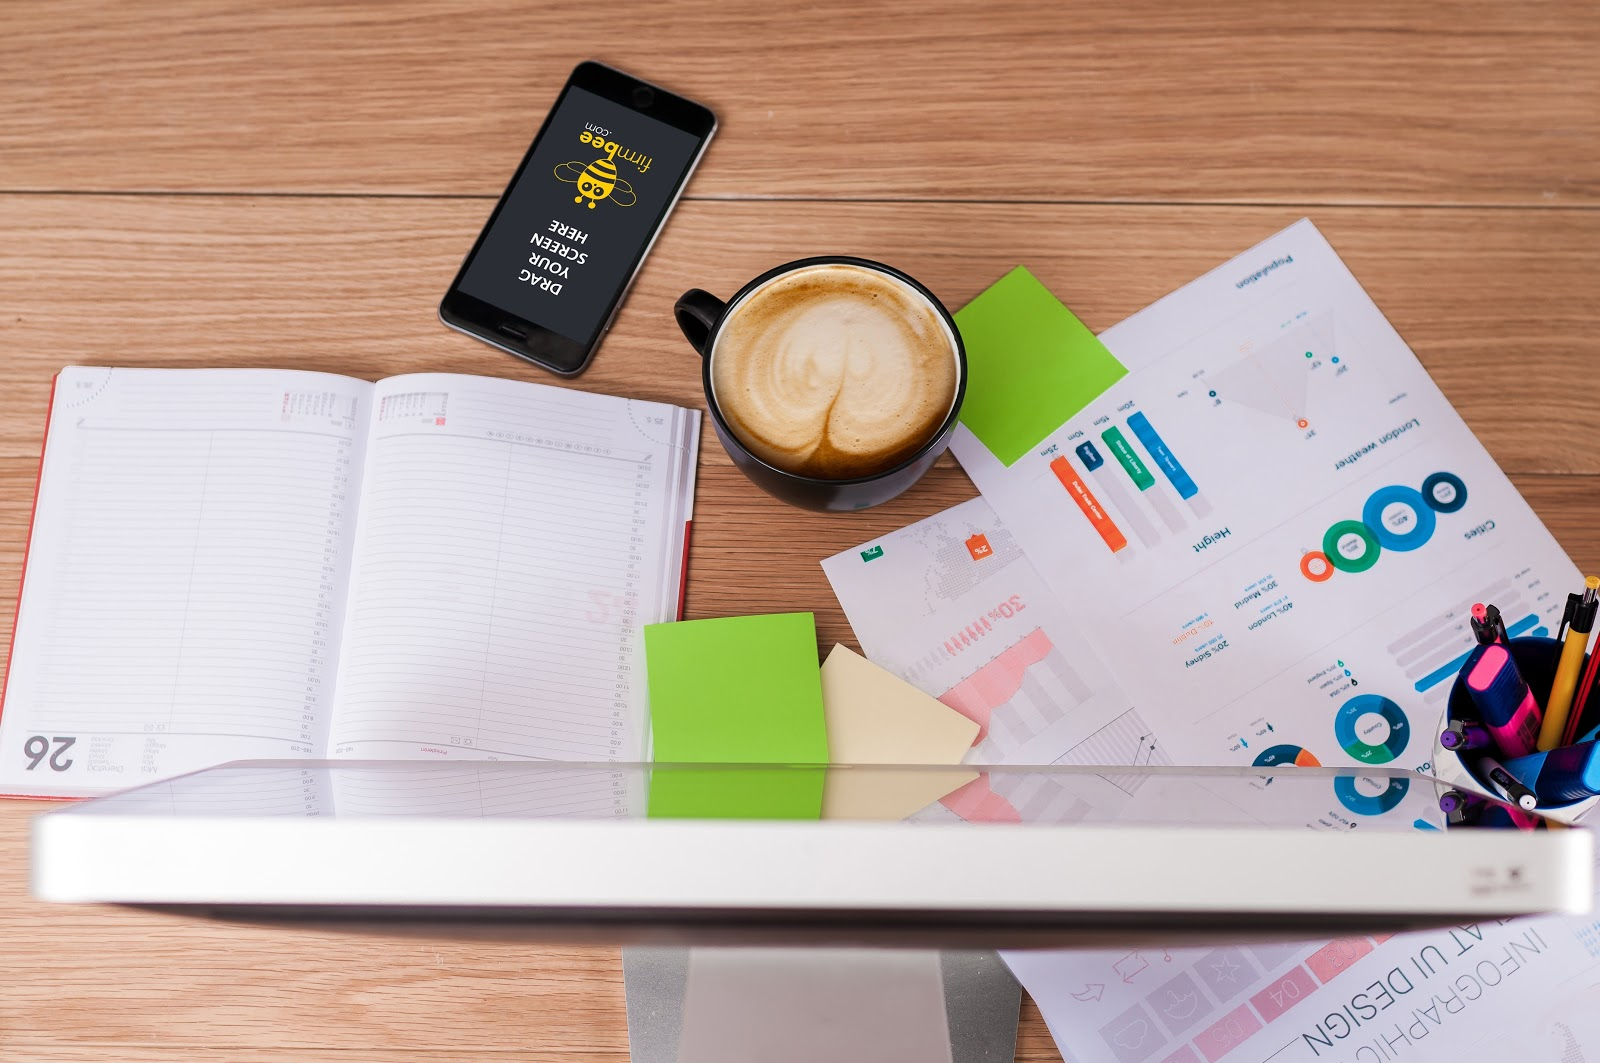 Sensational Business Marketing Hacks You Need to Get Right This Year